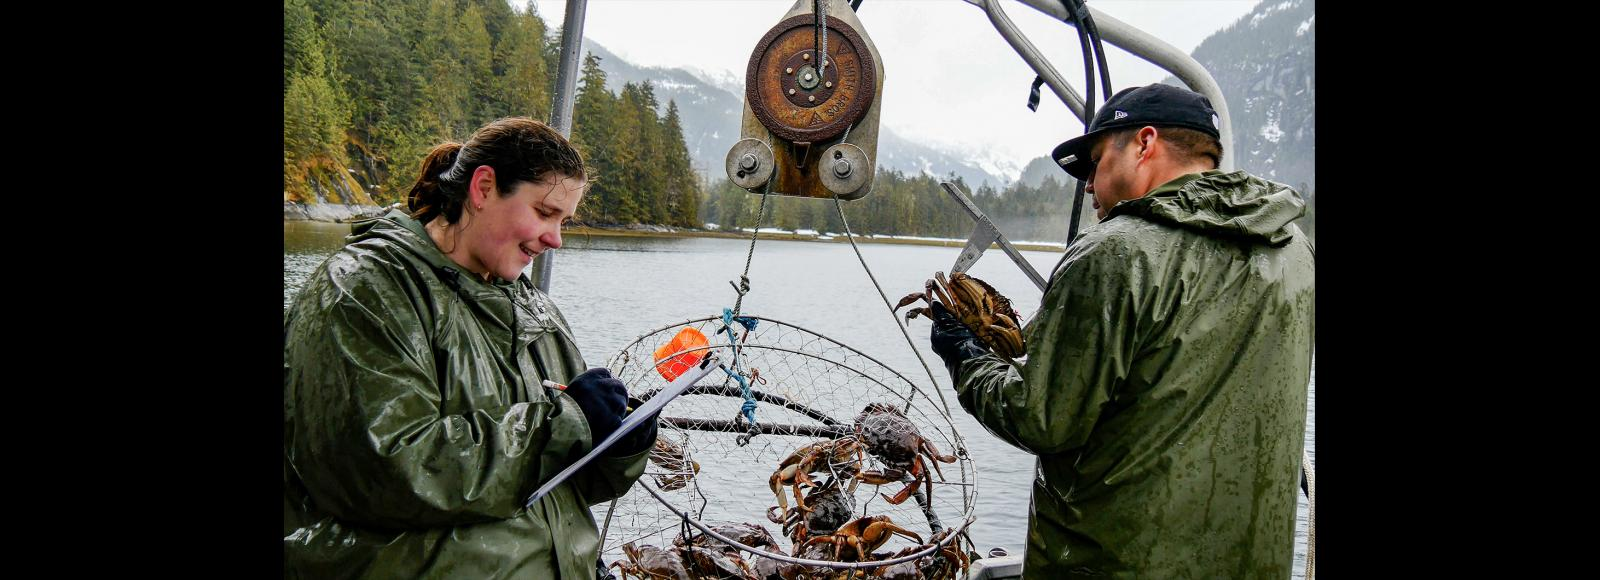 A woman looking down at her clipboard stands facing a man holding a Dungeness crab. A wire trap between them holds a dozen more crabs. They seem to be on a boat, with the lake surface and trees behind them.